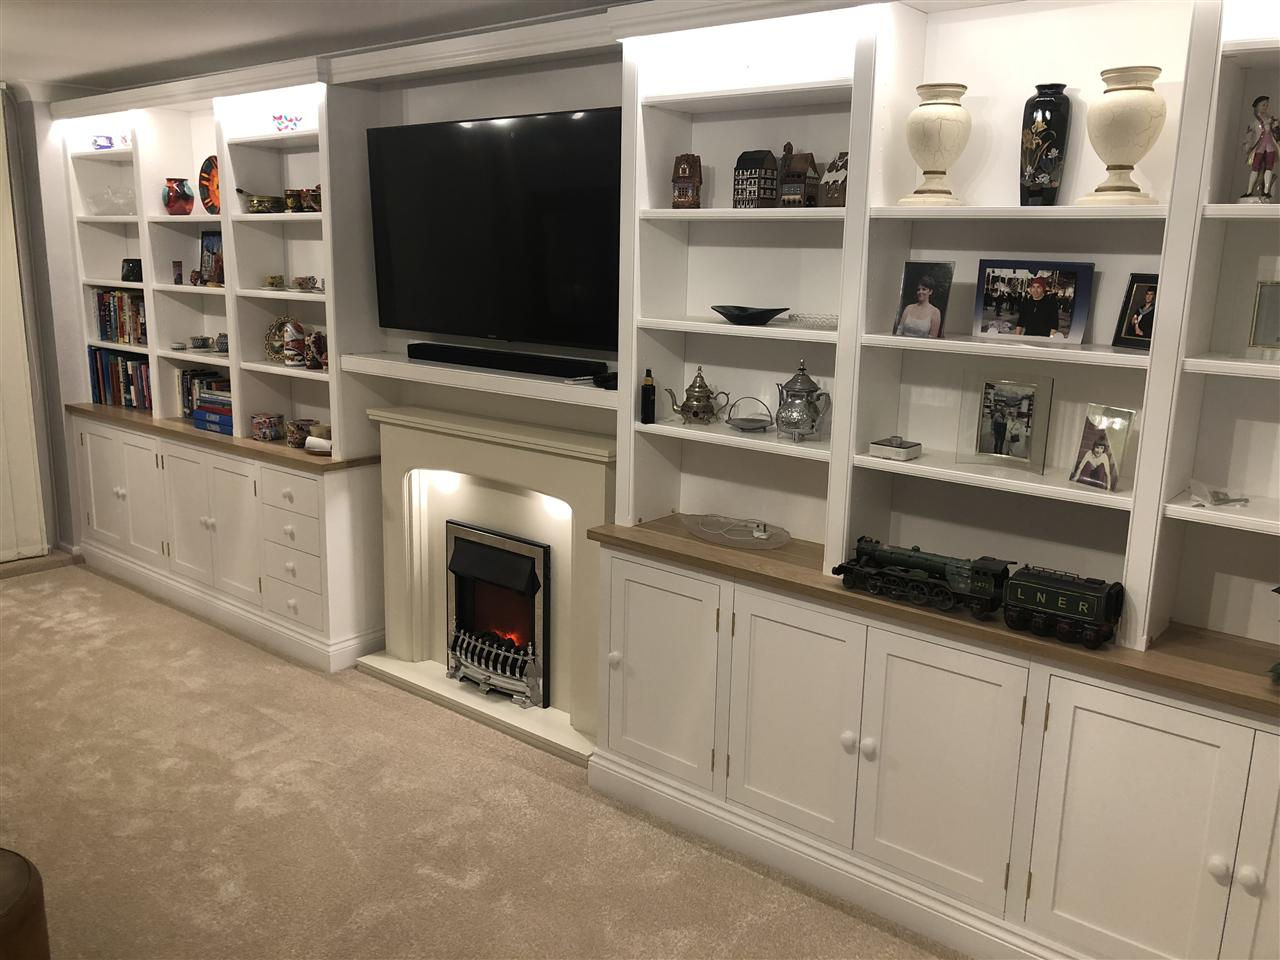 1) Wall mounted TV & Fire surround